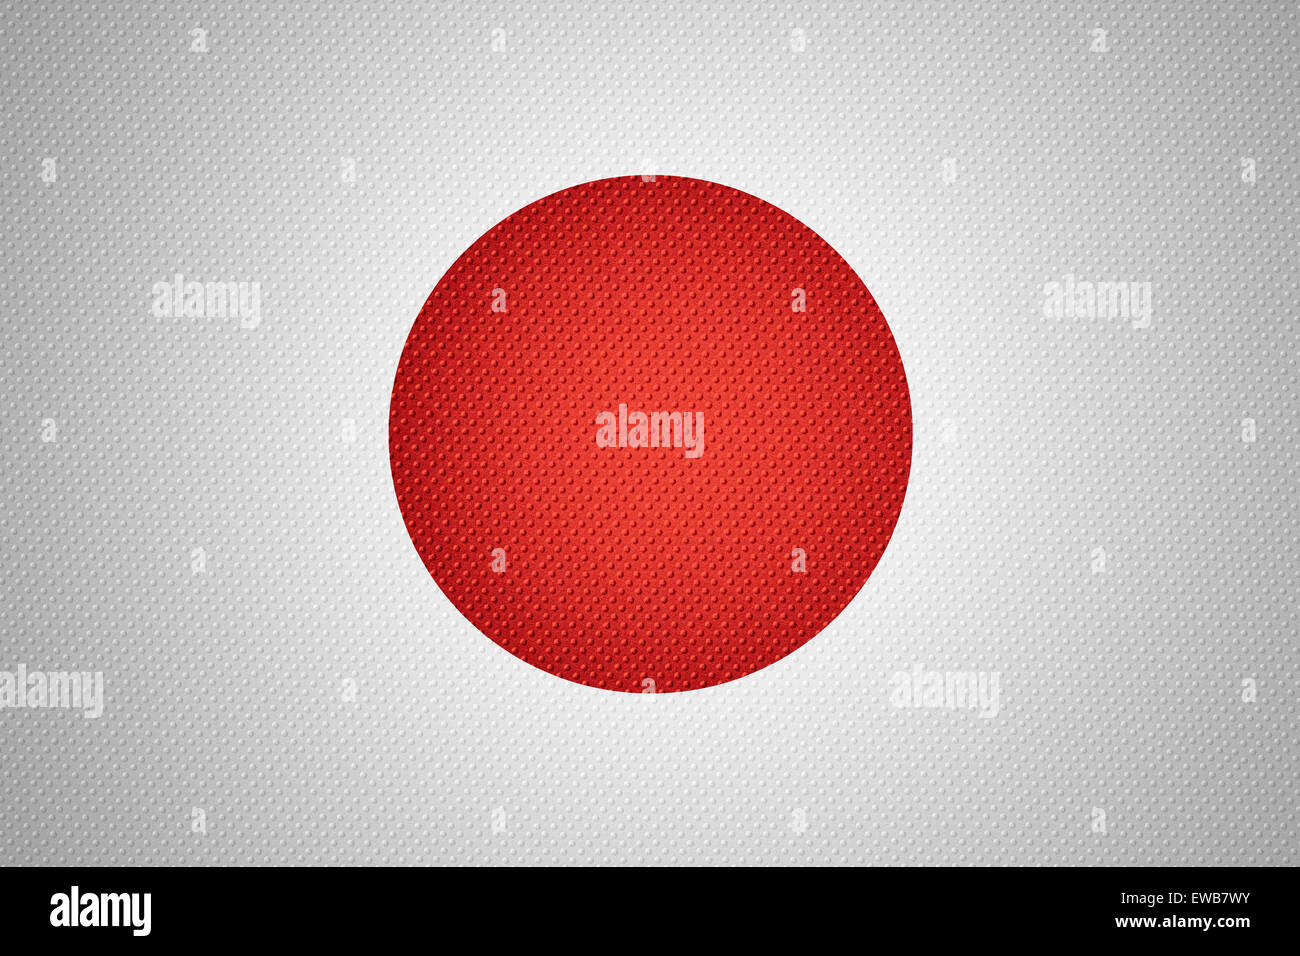 Japan flag or Japanese banner on abstract texture Stock Photo